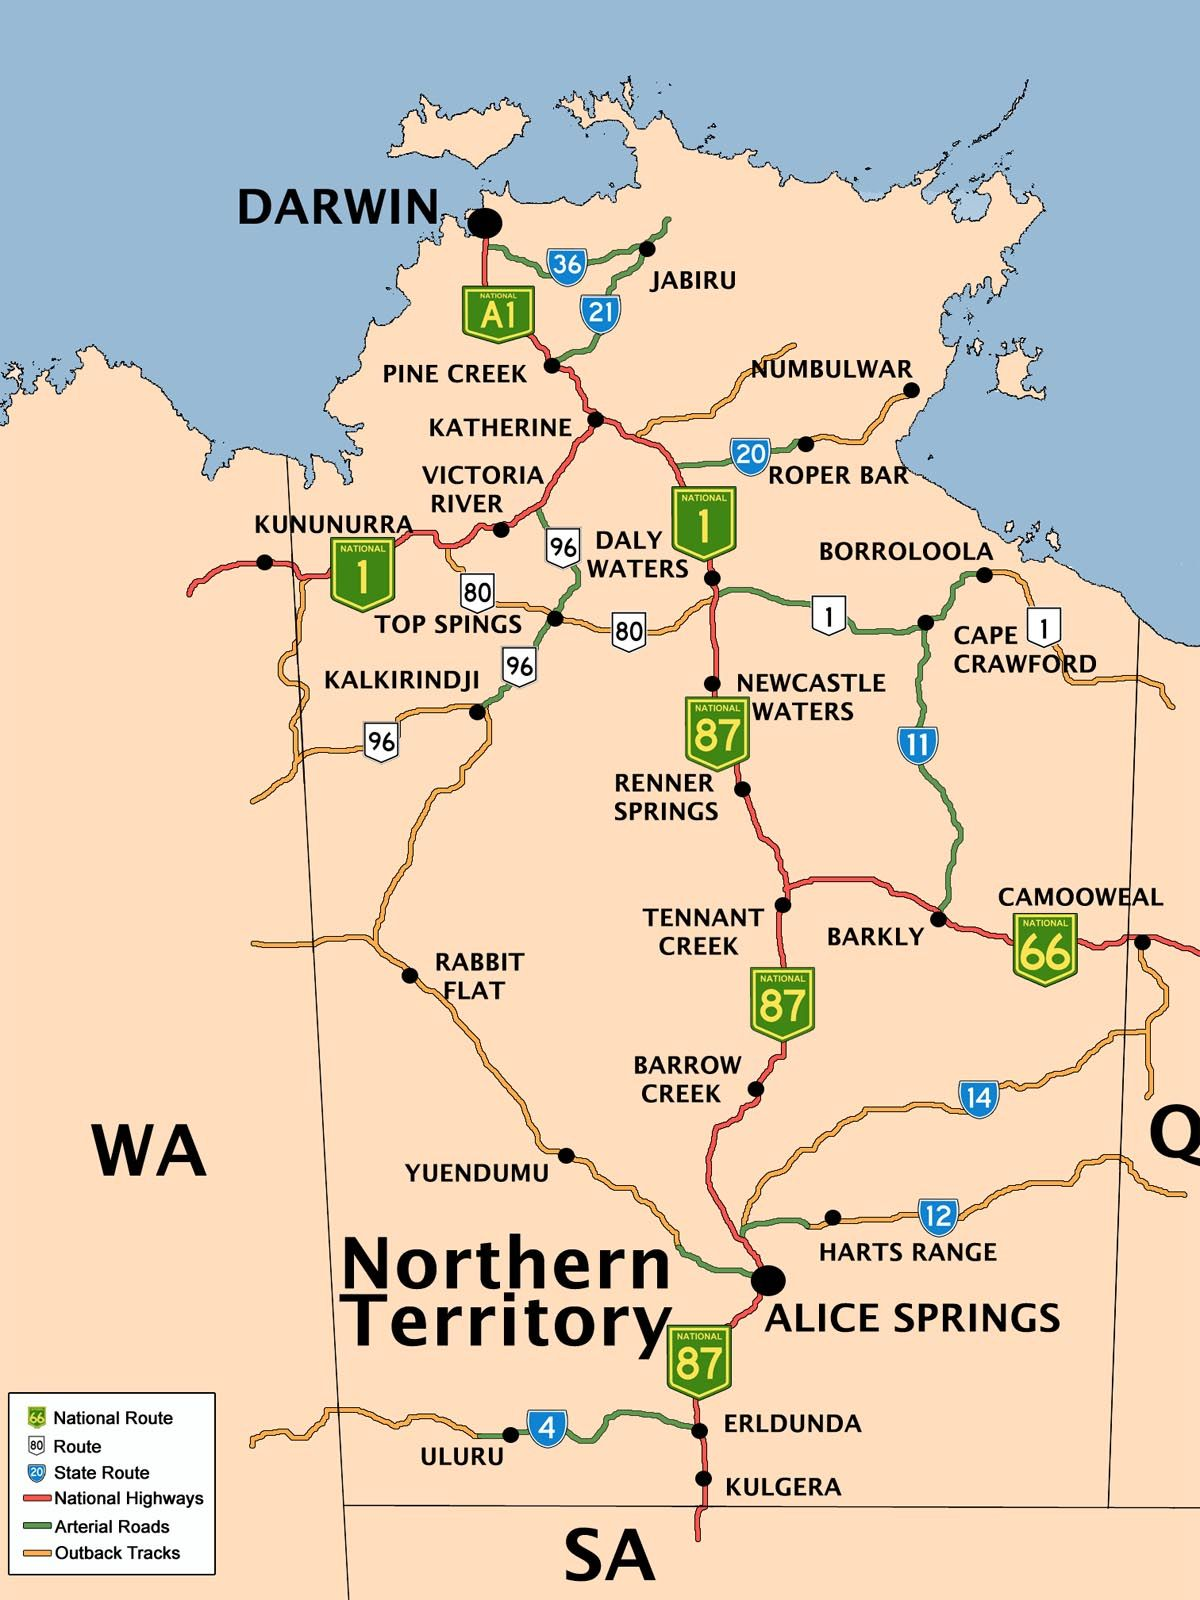 Darwin Map Of Australia.Northern Territory Australia Ausie Australia Travel Darwin